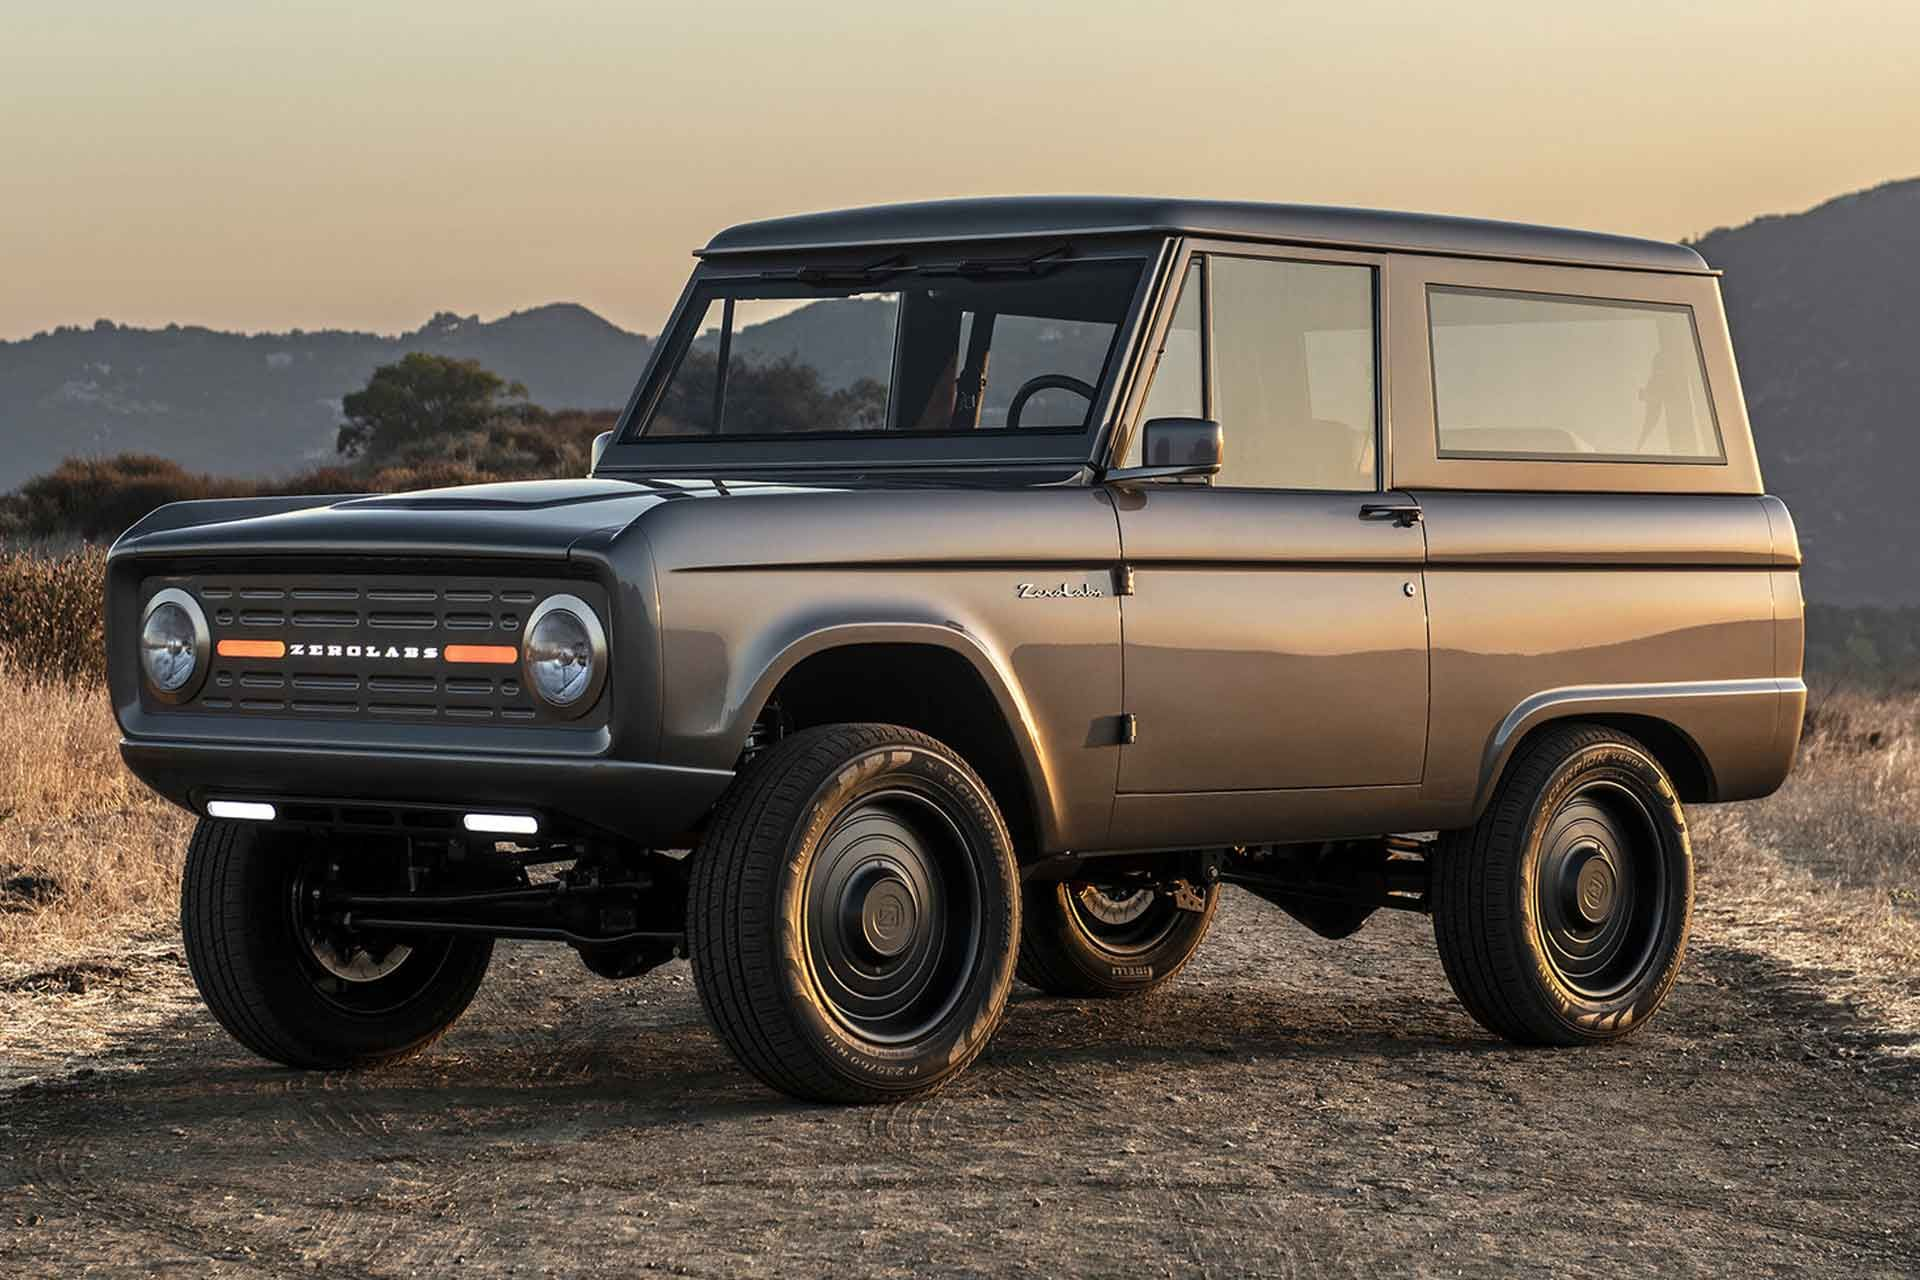 Ford S Next Gen Bronco Has Been Officially Revealed With The New Model Coming In 2021 And No Electric Powertrain Available At L In 2020 Ford Bronco Suv Classic Bronco